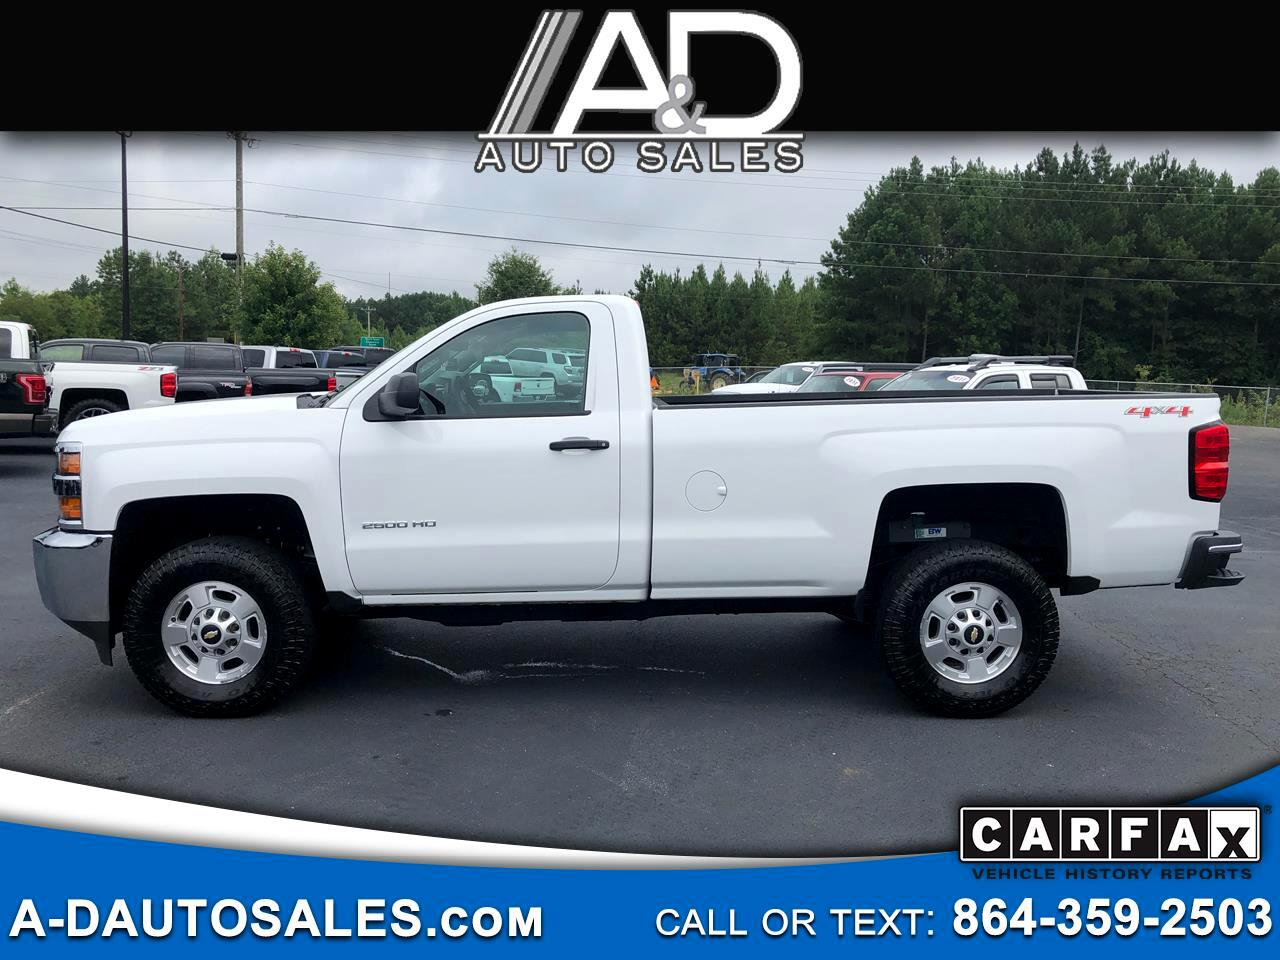 2015 Chevrolet Silverado 2500HD Built After Aug 14 4WD Reg Cab 133.6